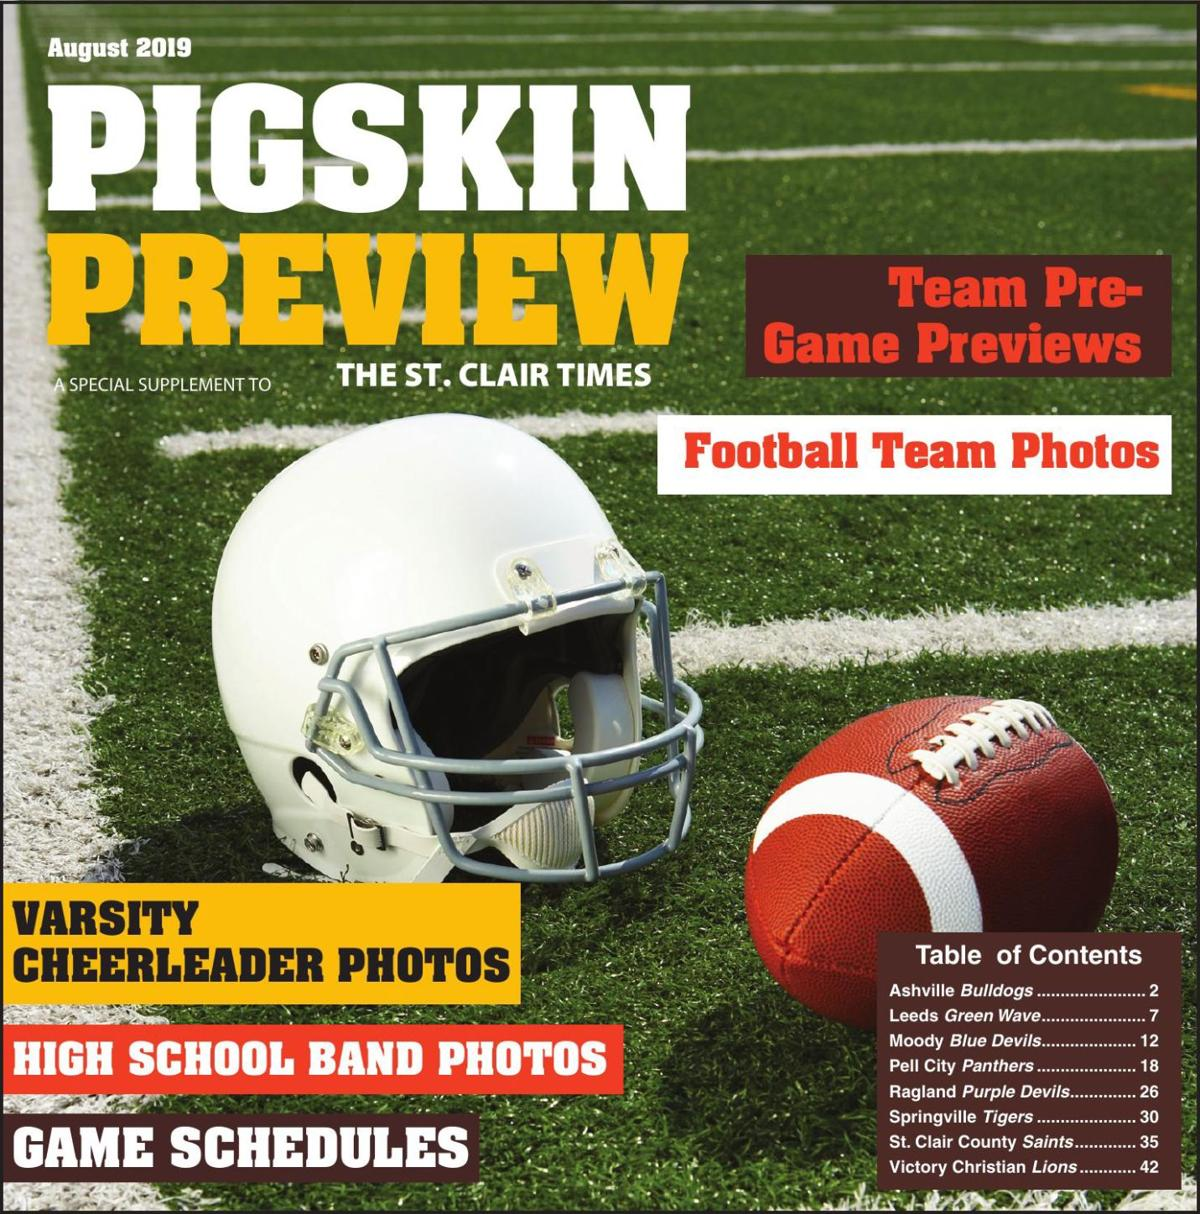 2019 Pigskin Preview